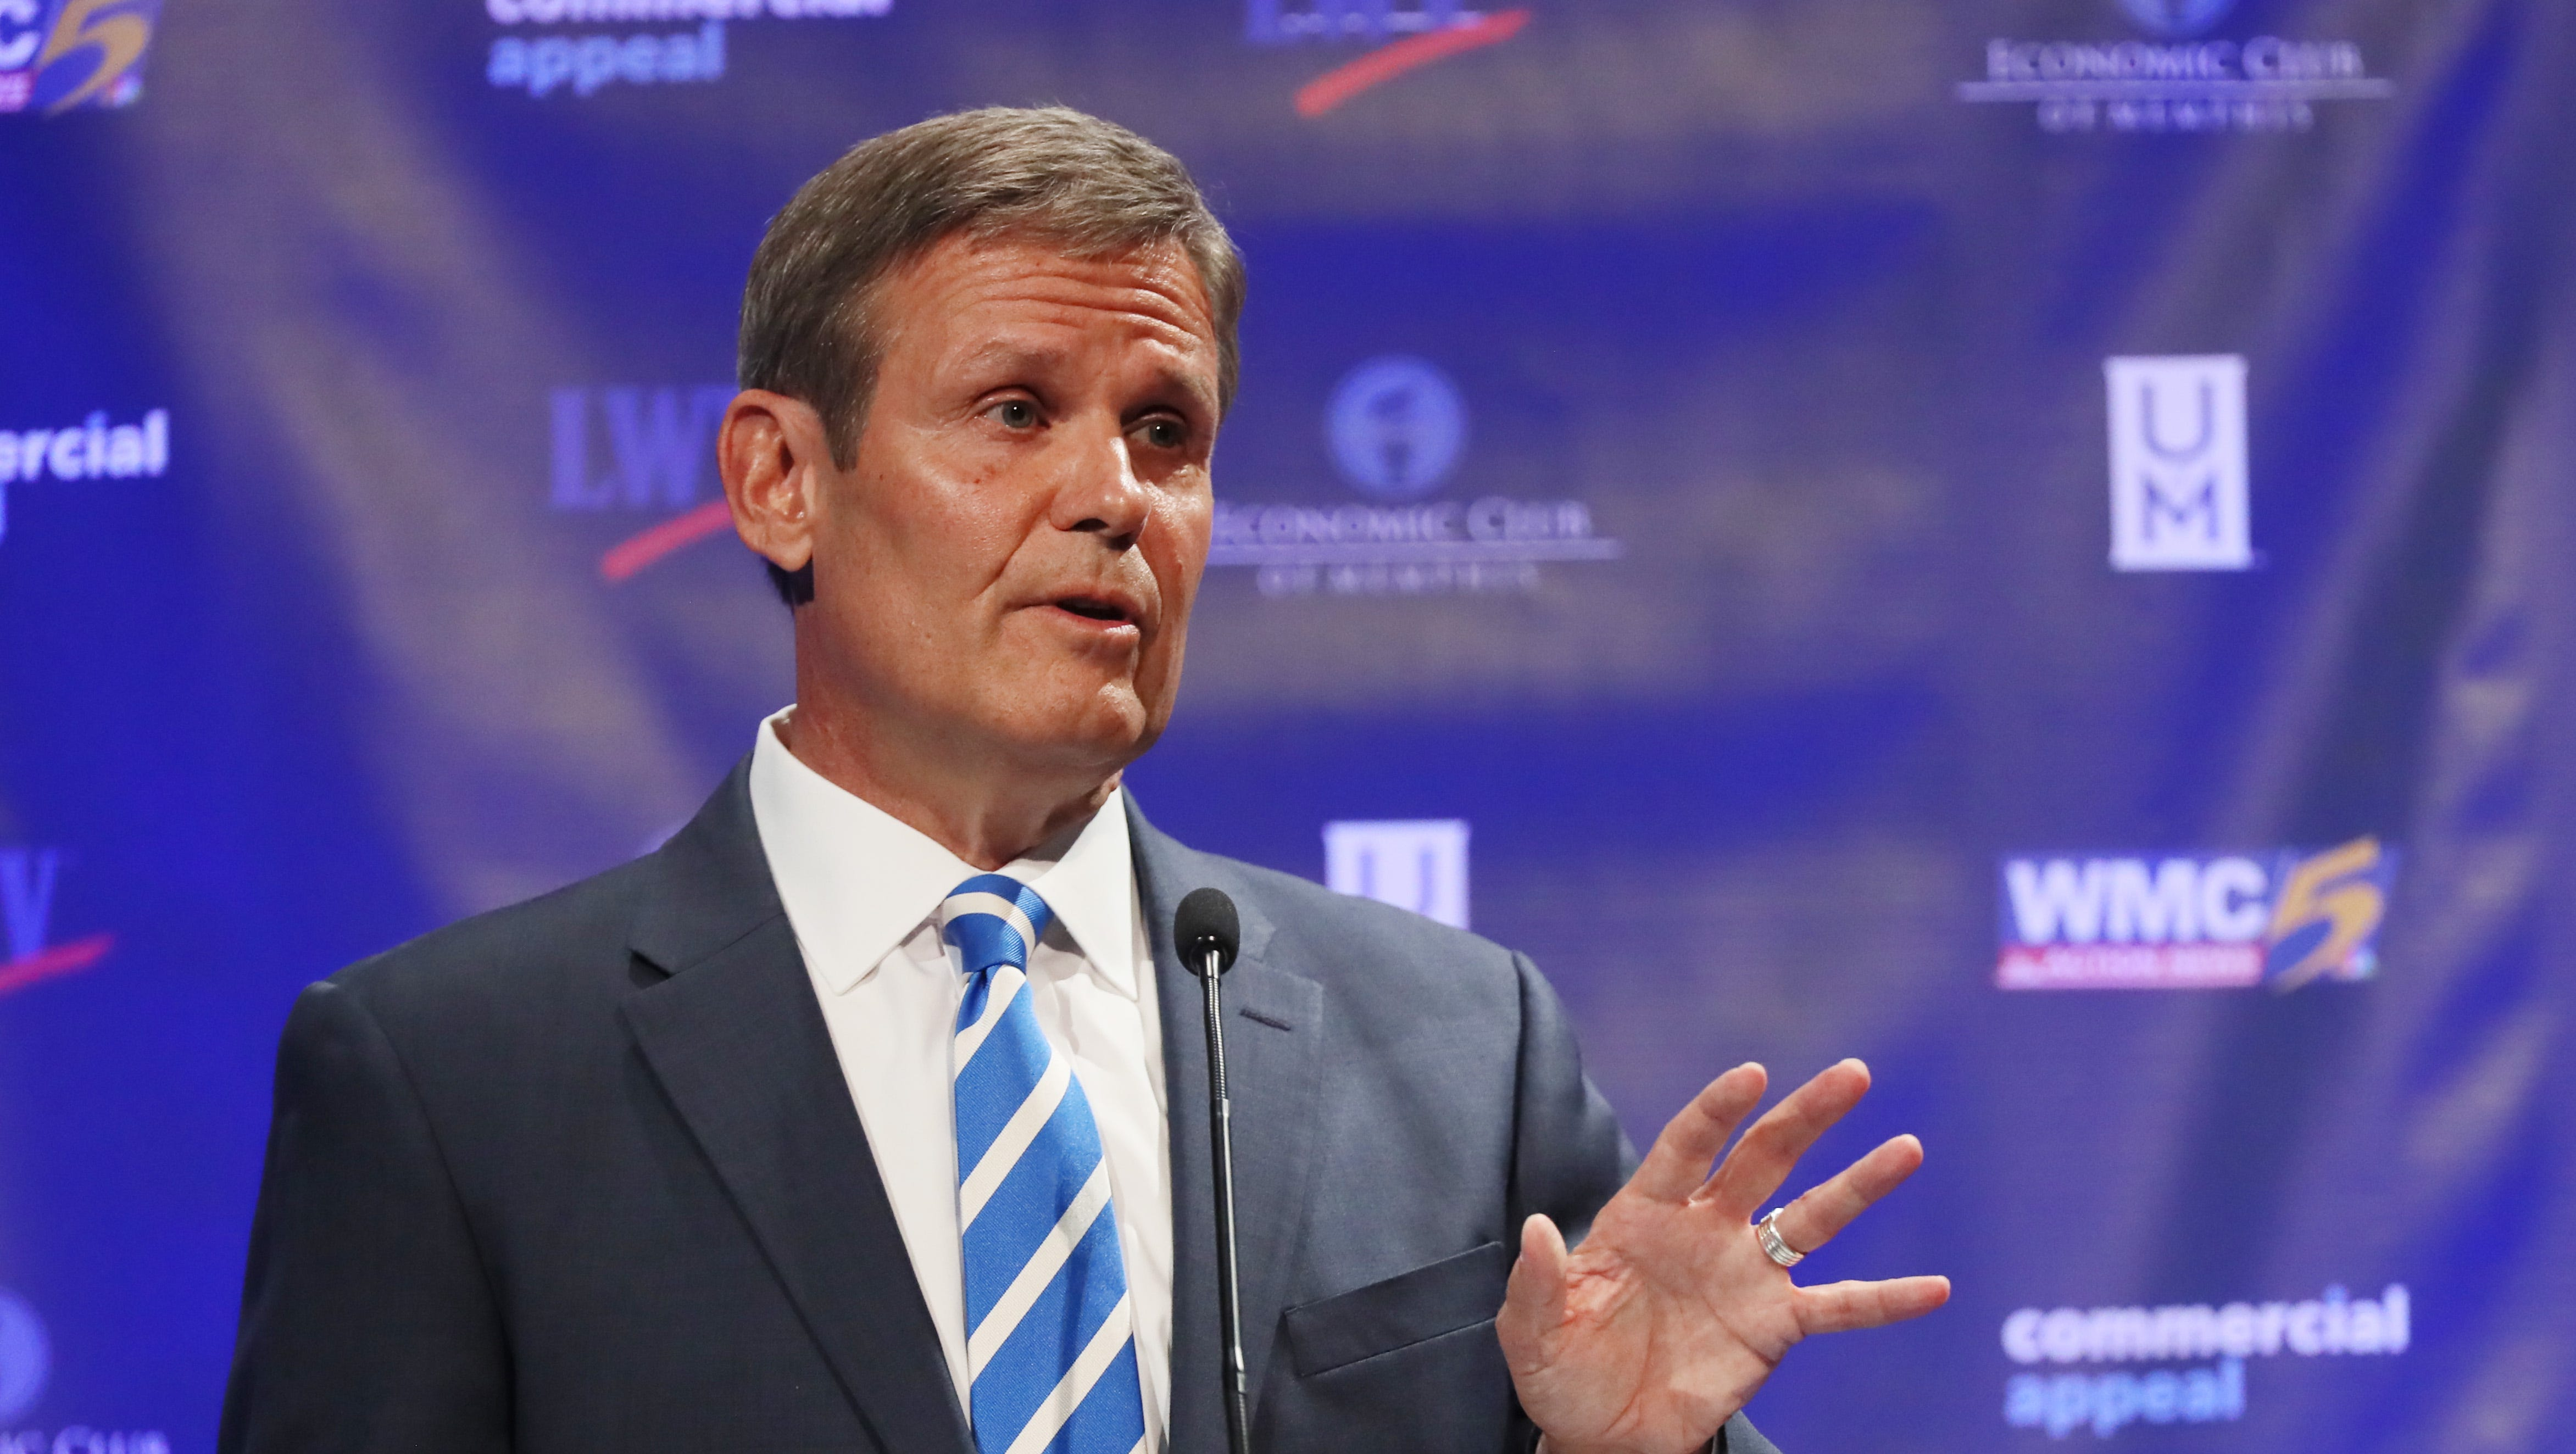 Bill Lee, Muslim advocacy group agree to meet after reports that campaign sought photo of opponent